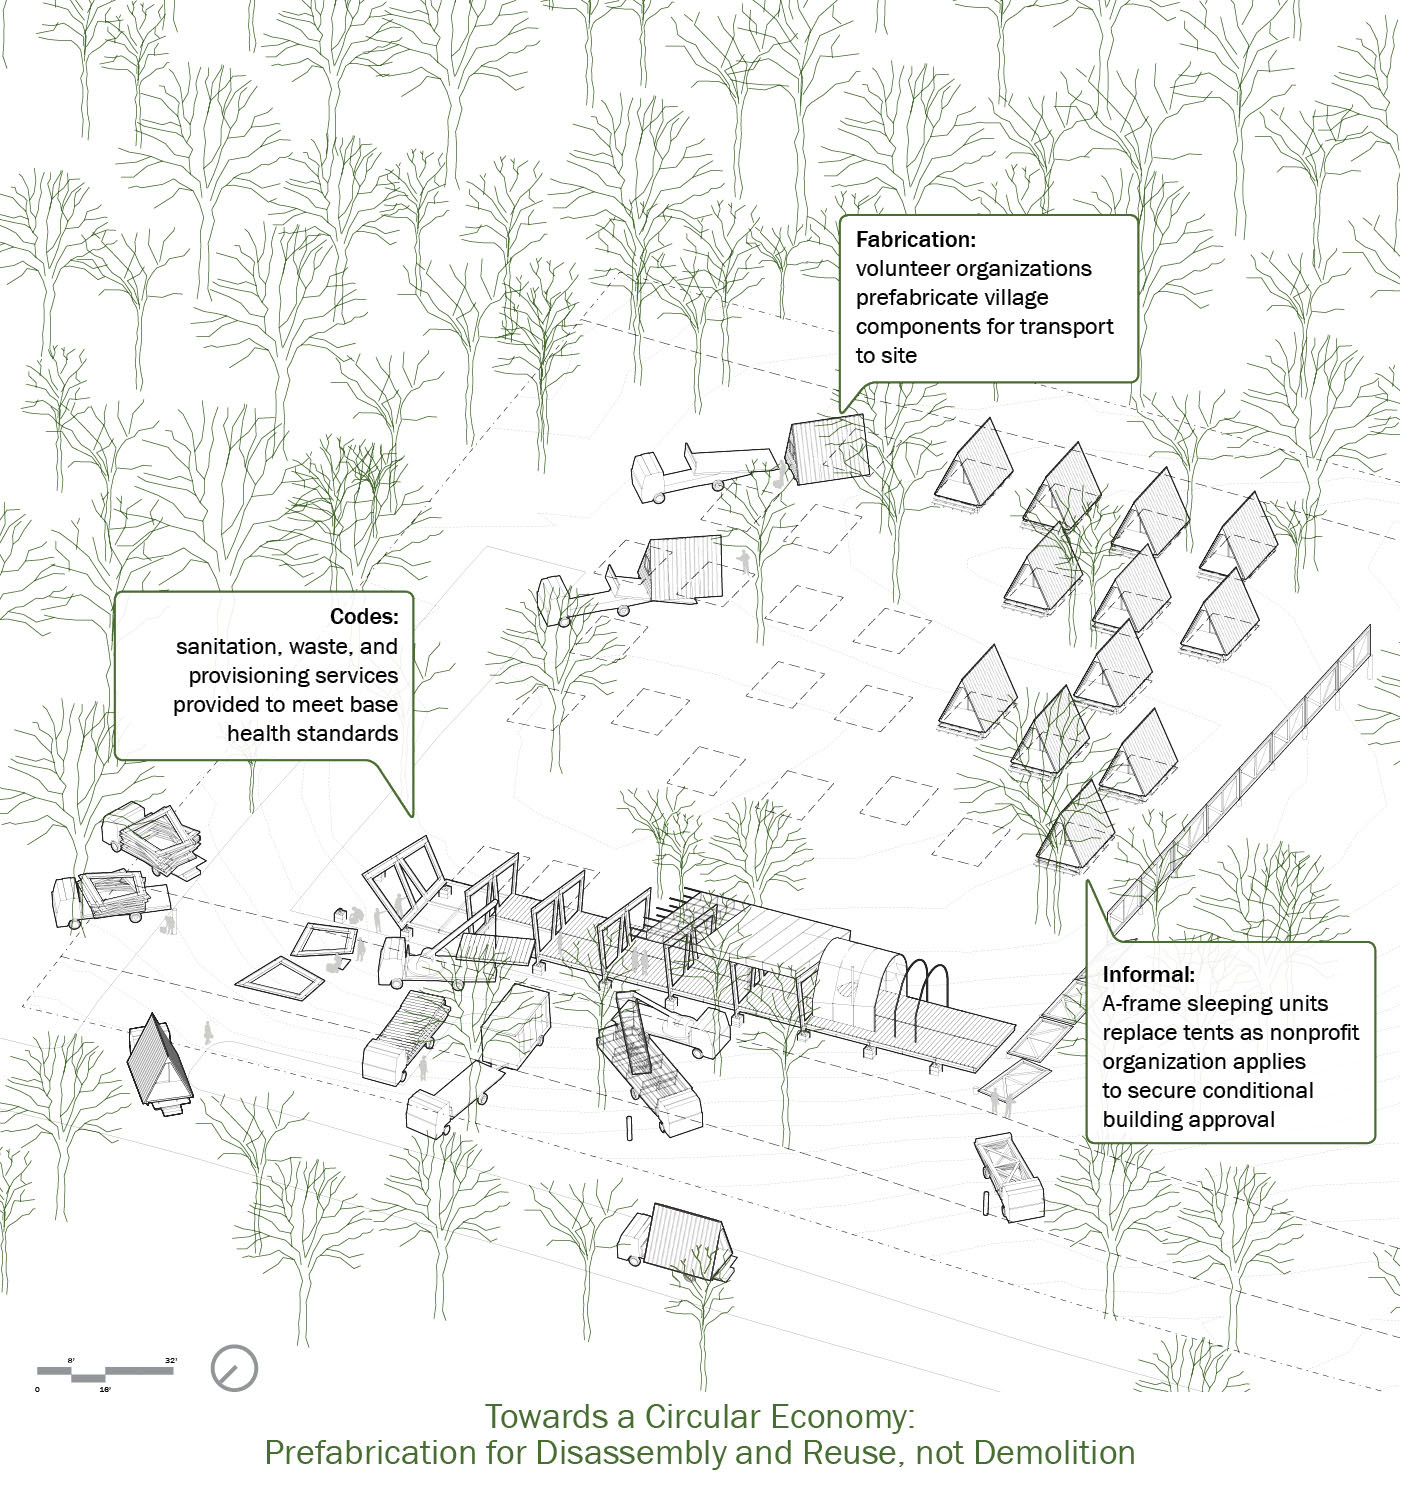 Towards a Circular Economy: Prefabrication for Disassembly and Reuse, not Demolition University of Arkansas Community Design Center}